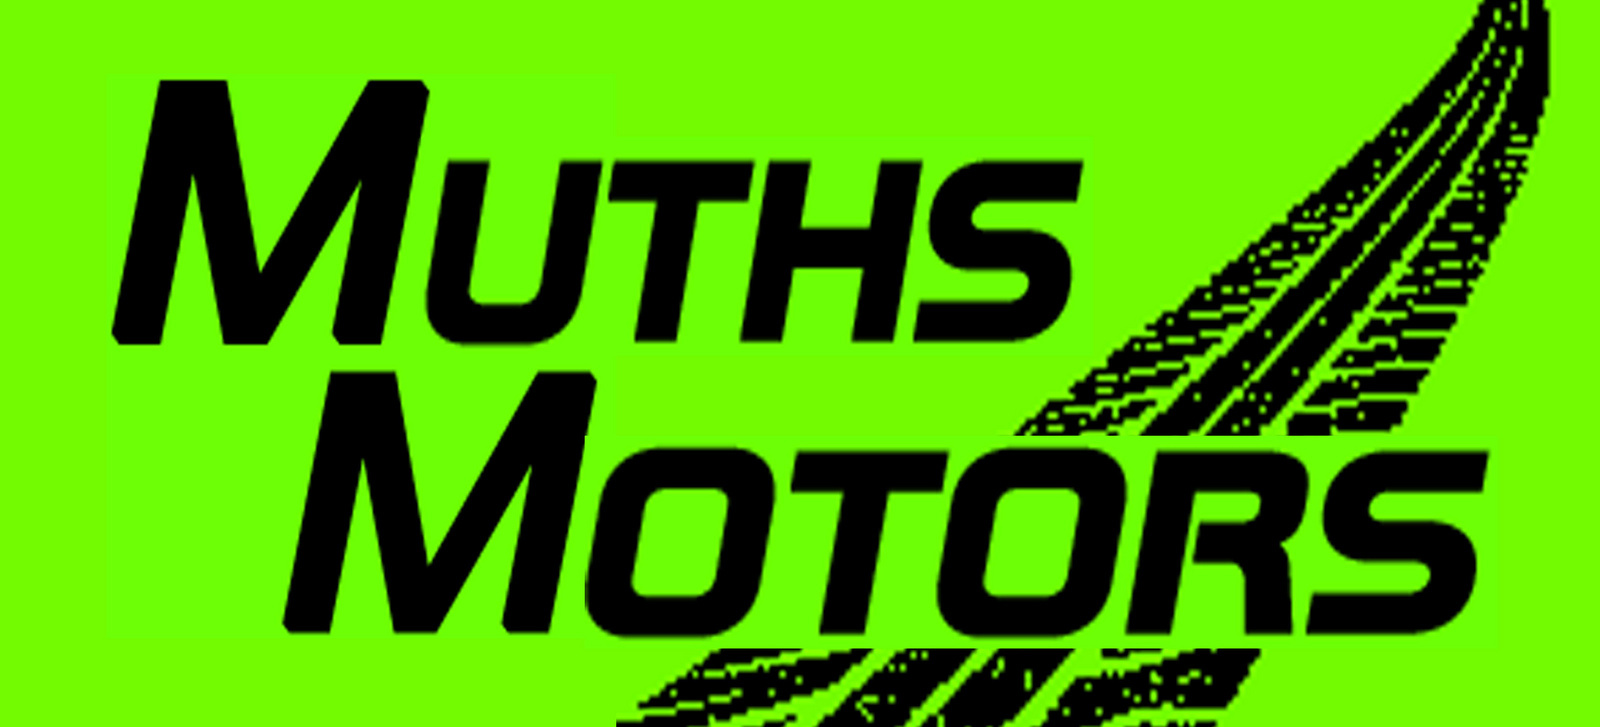 Gmc Dealers Omaha >> Muths Motors - Omaha, NE: Read Consumer reviews, Browse